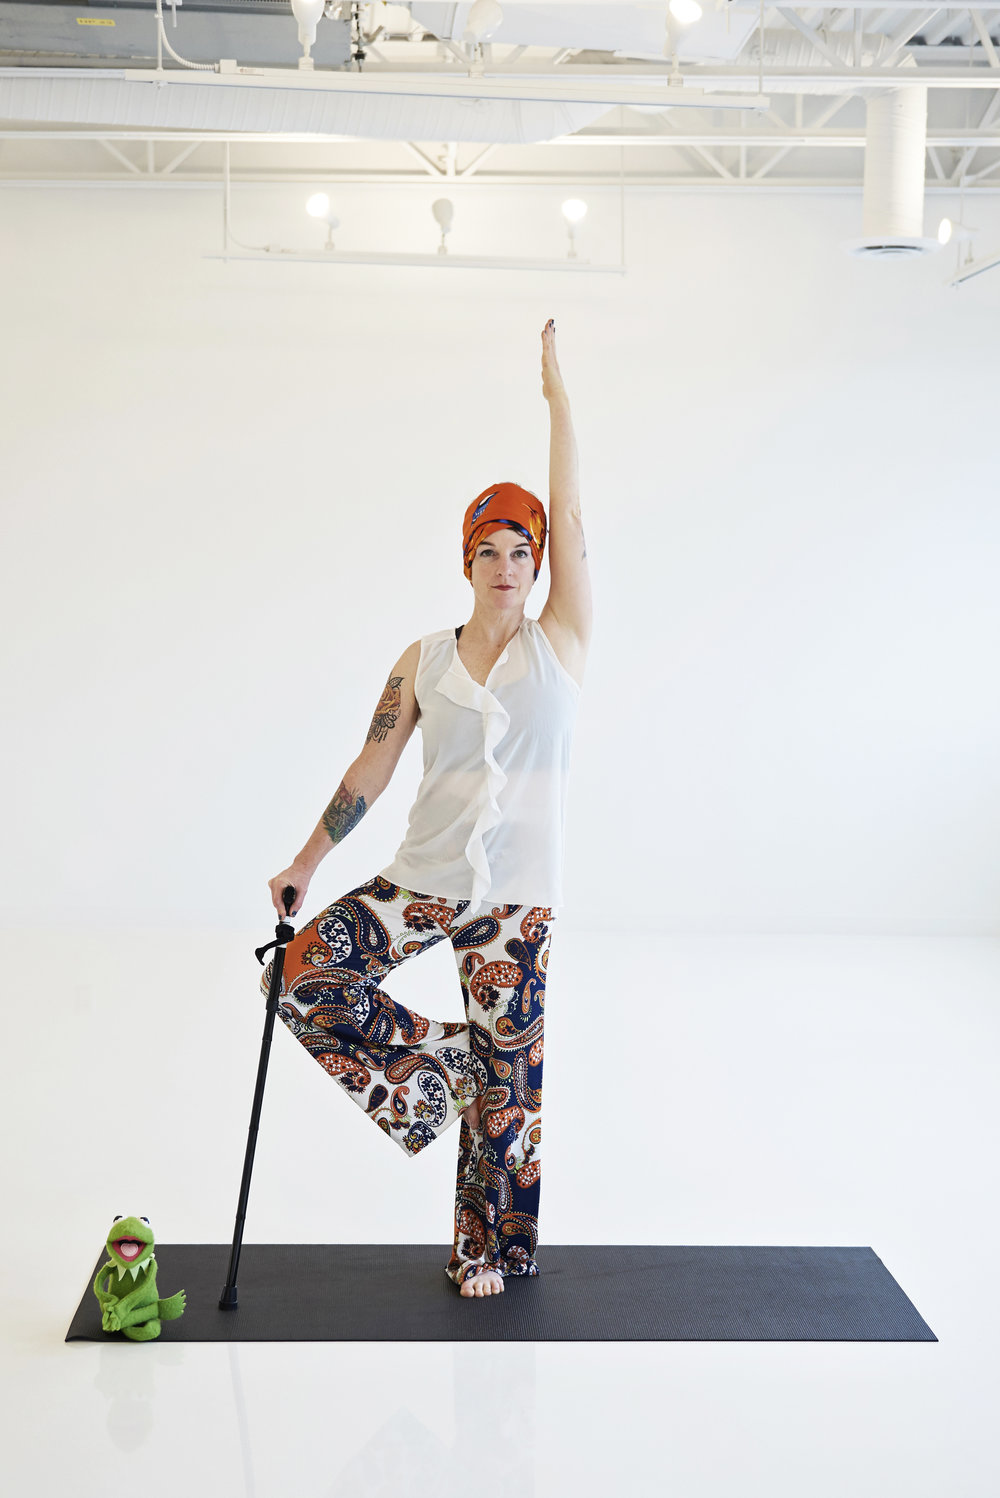 norine-longmire-haven-yoga-instructor-kundalini-hatha-abbotsford.jpg